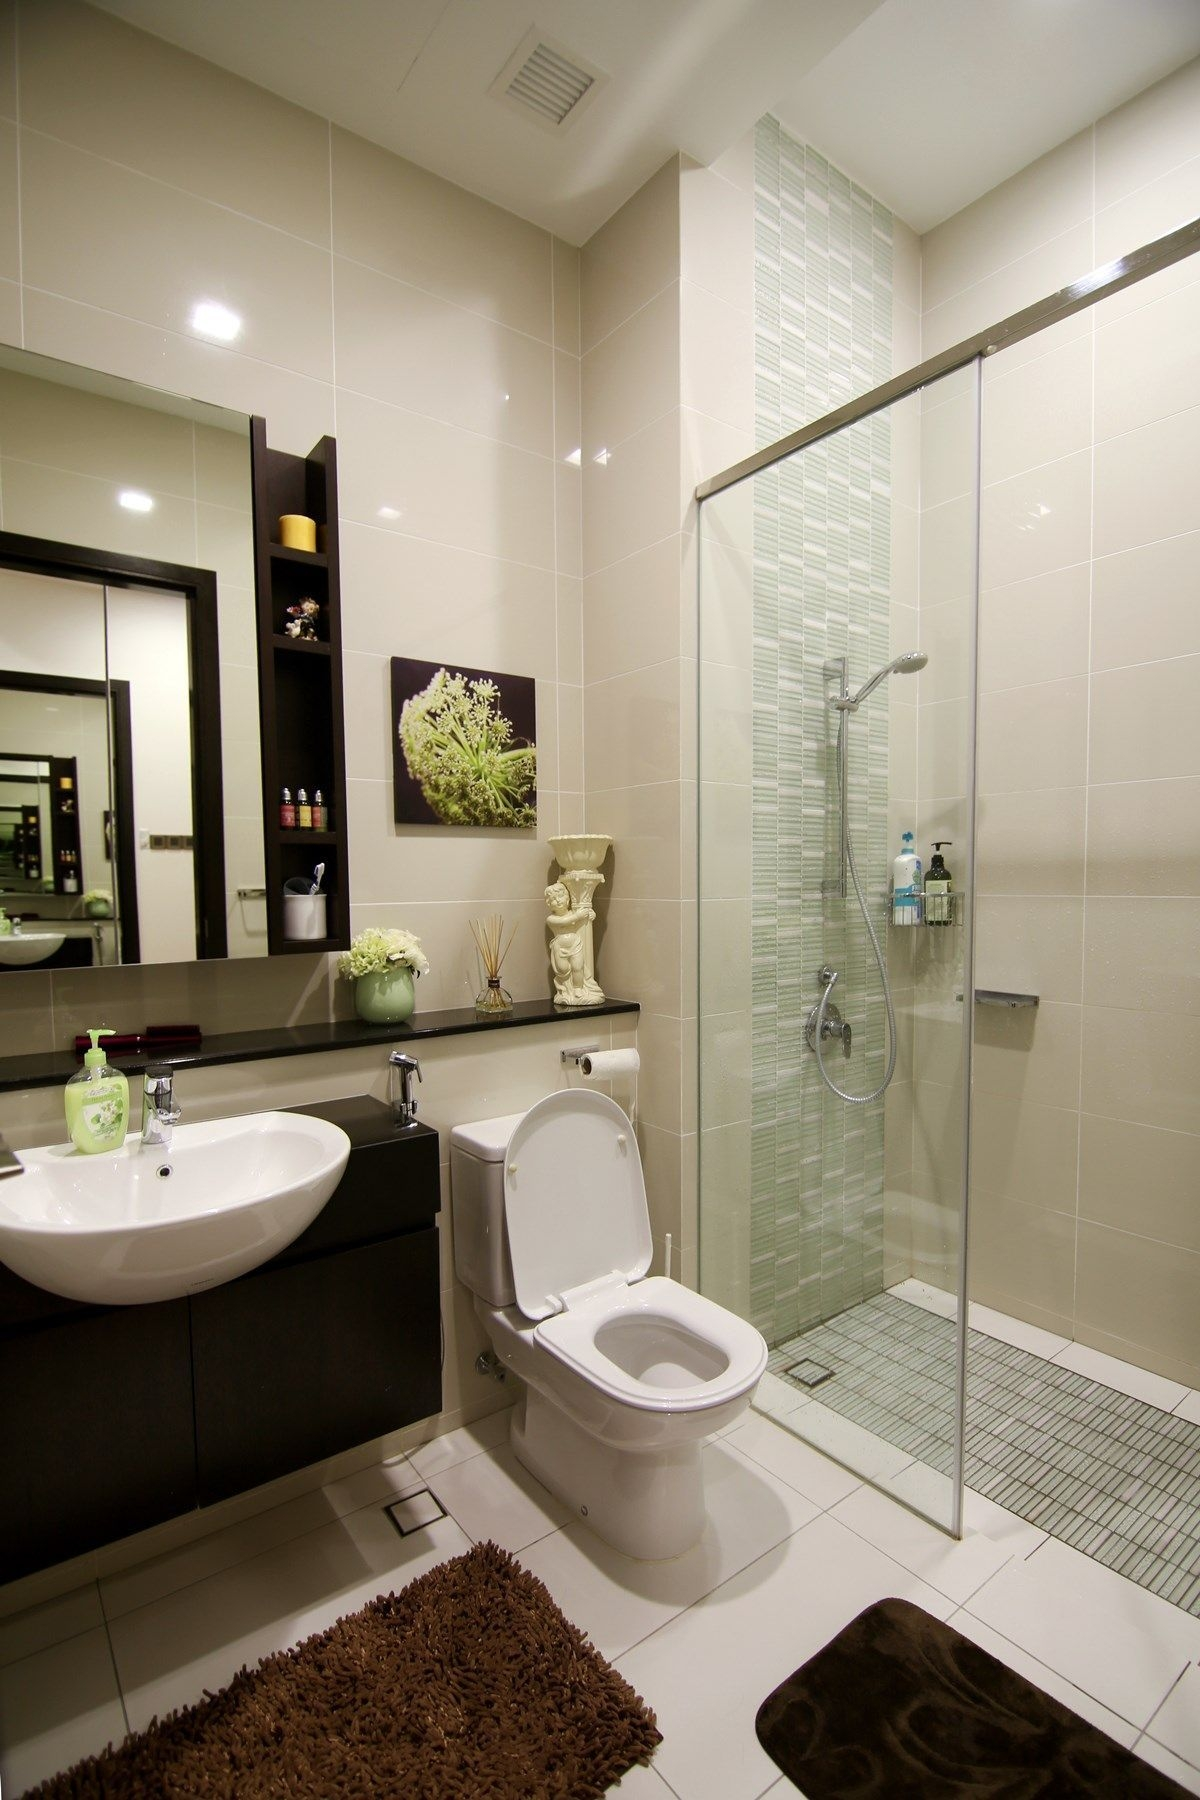 Simple And Nice Bathroom Design Love How The Designer Has Used Decor Items To Liven Up The